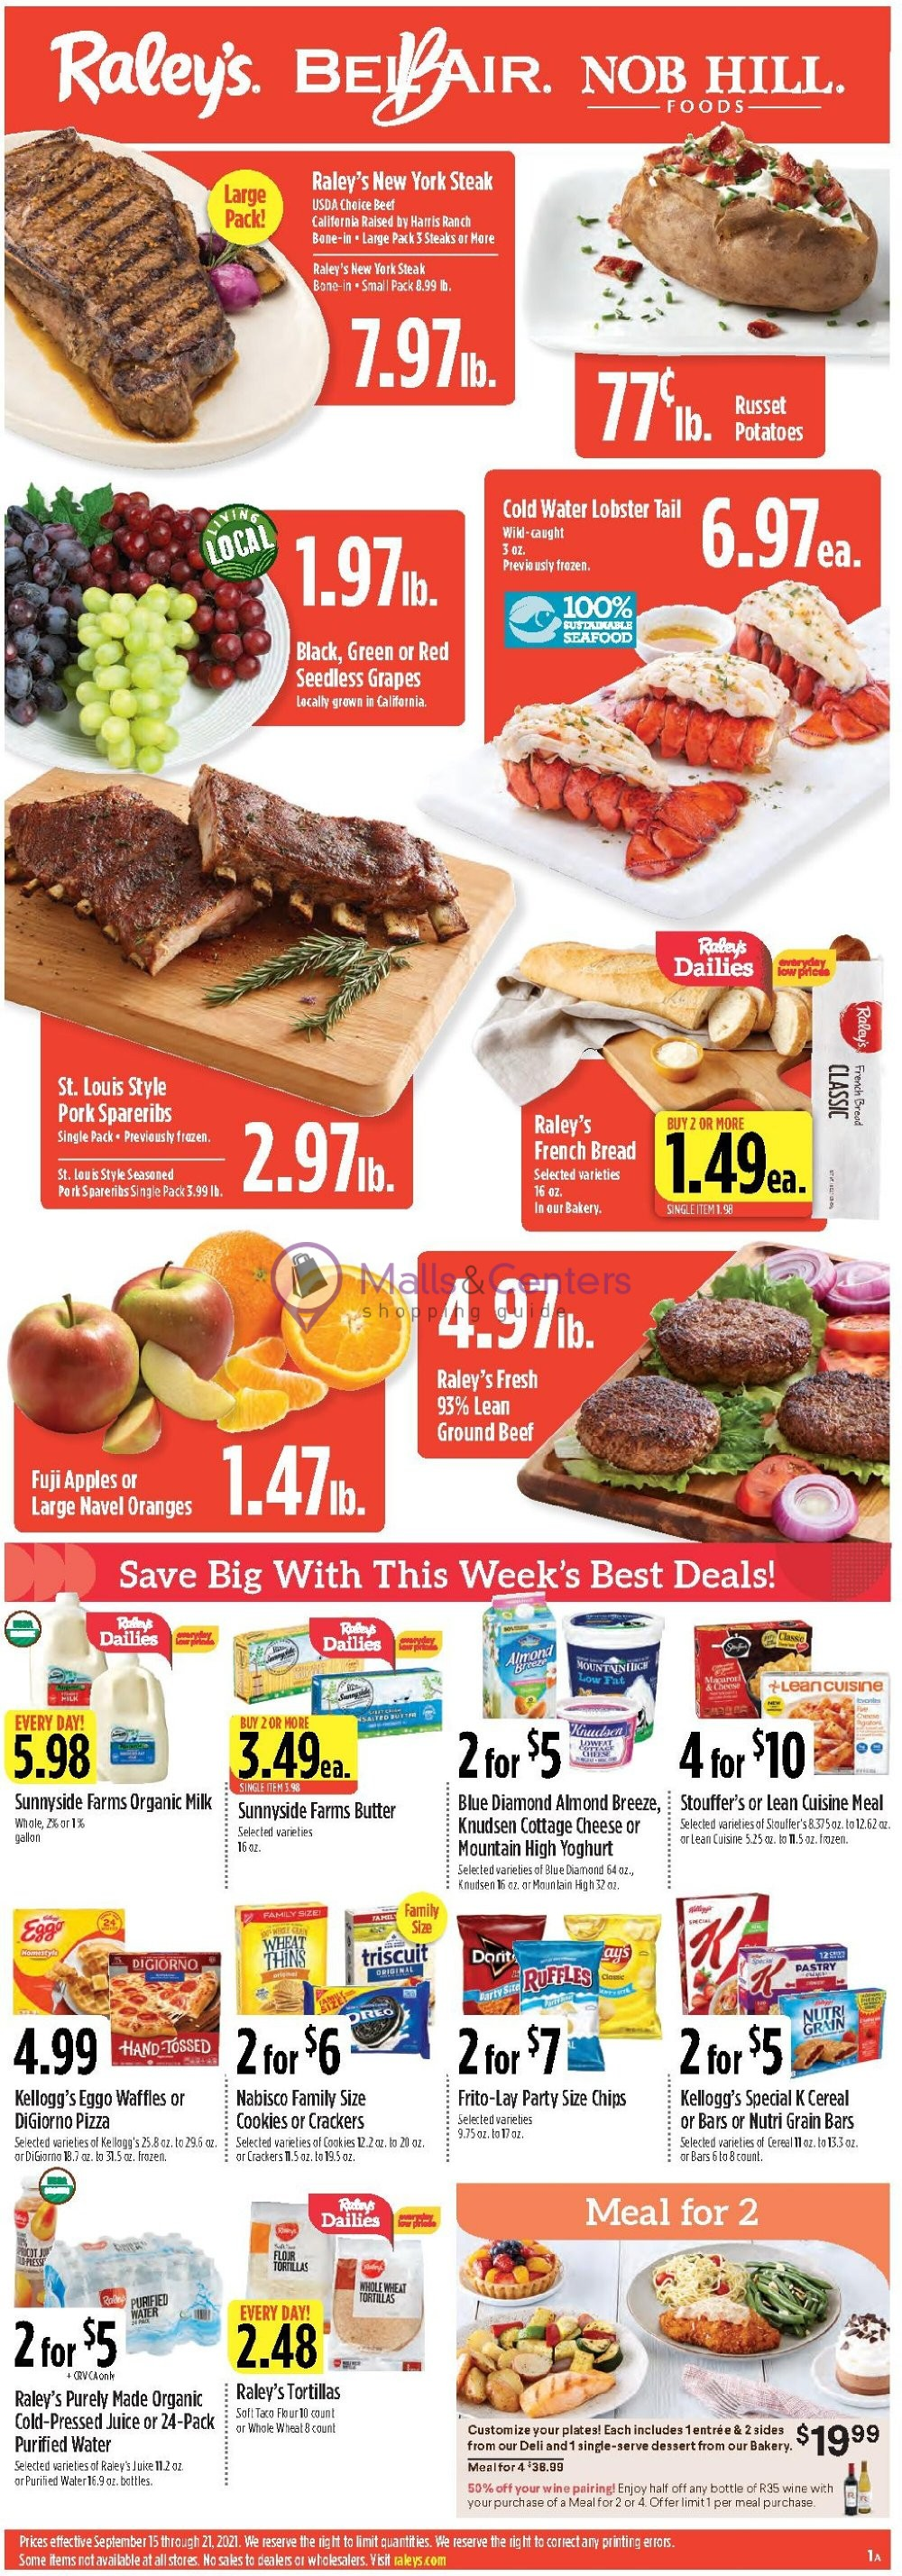 weekly ads Raley's - page 1 - mallscenters.com